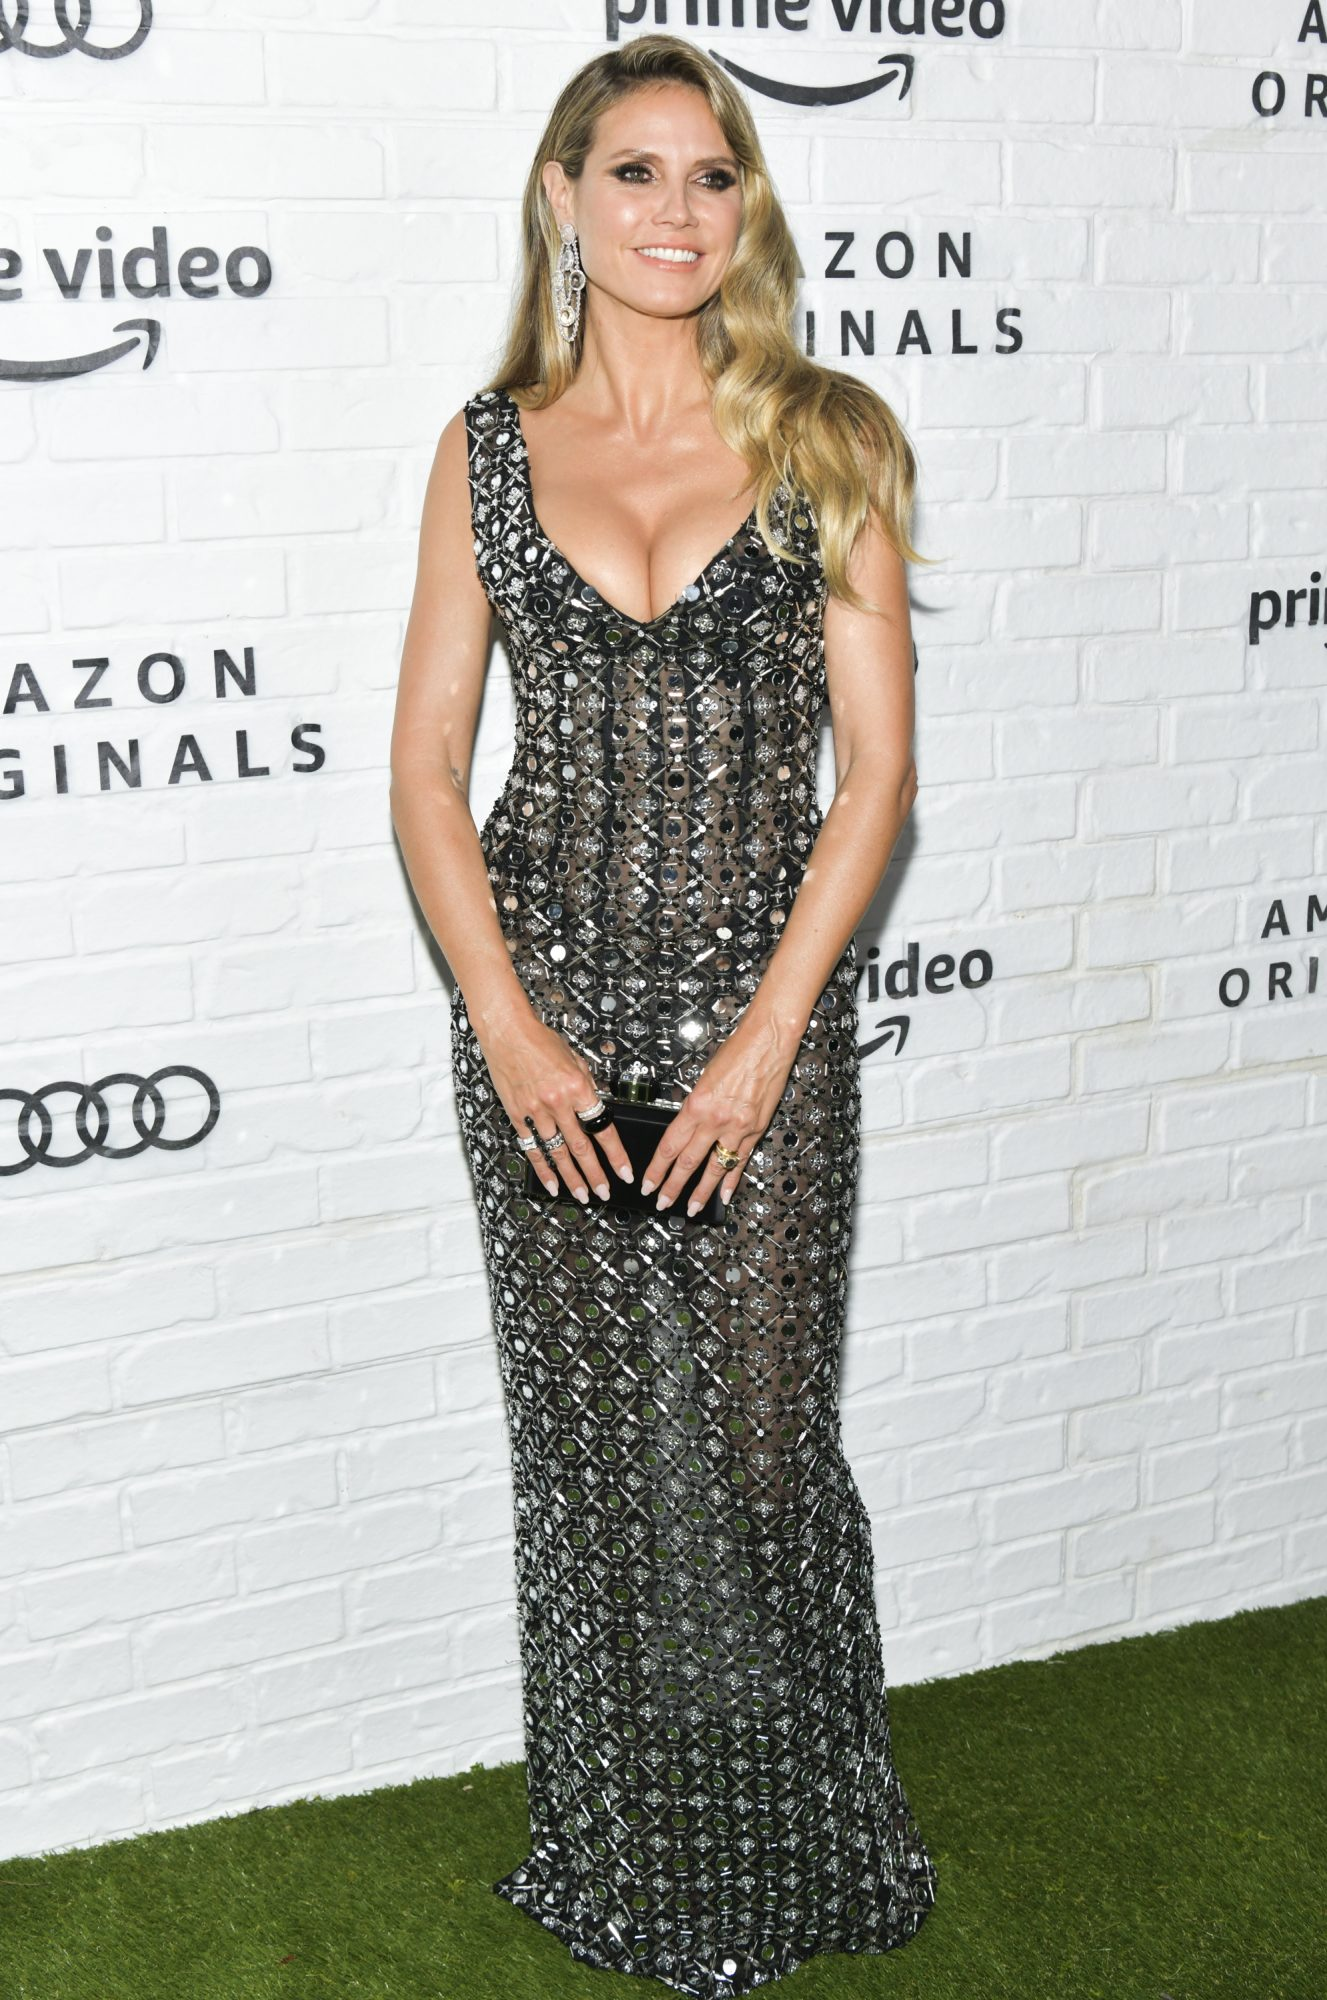 Emmys After Party - Heidi Klum